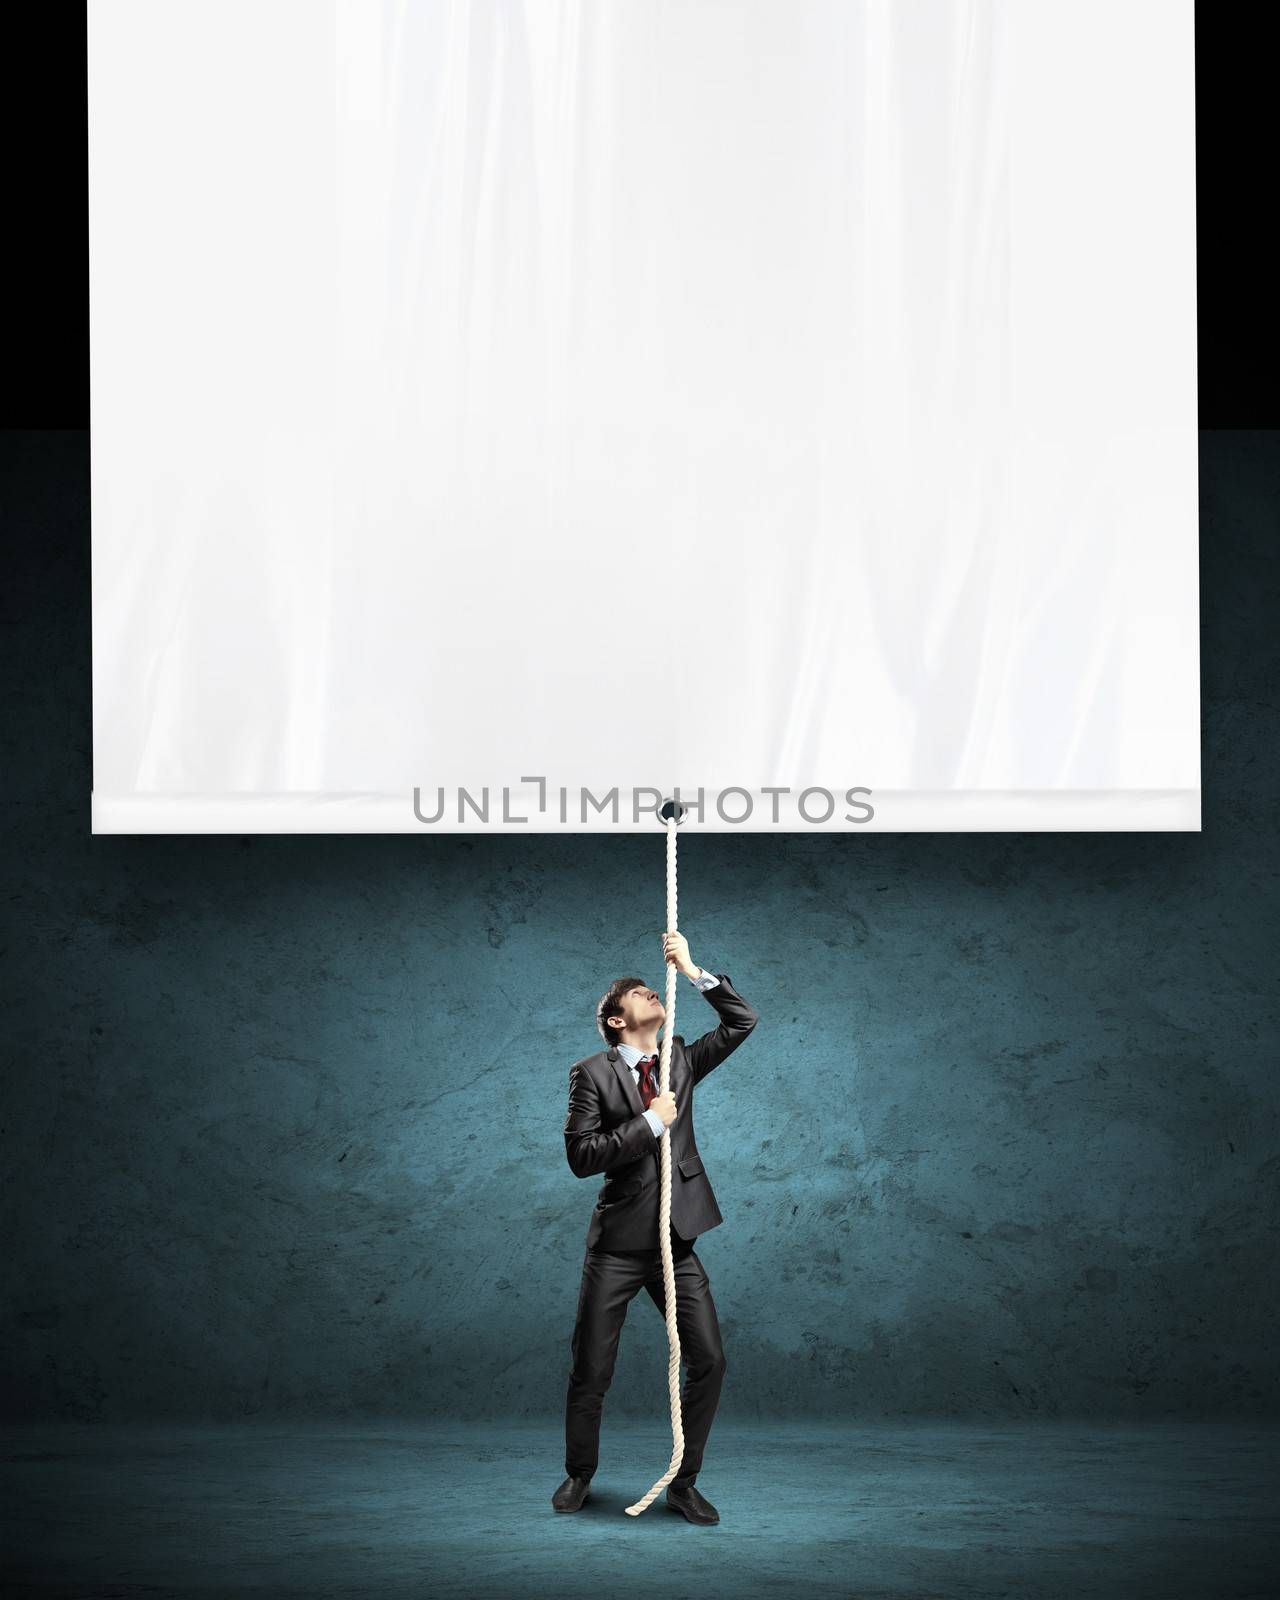 Abstract light blue background with various objects